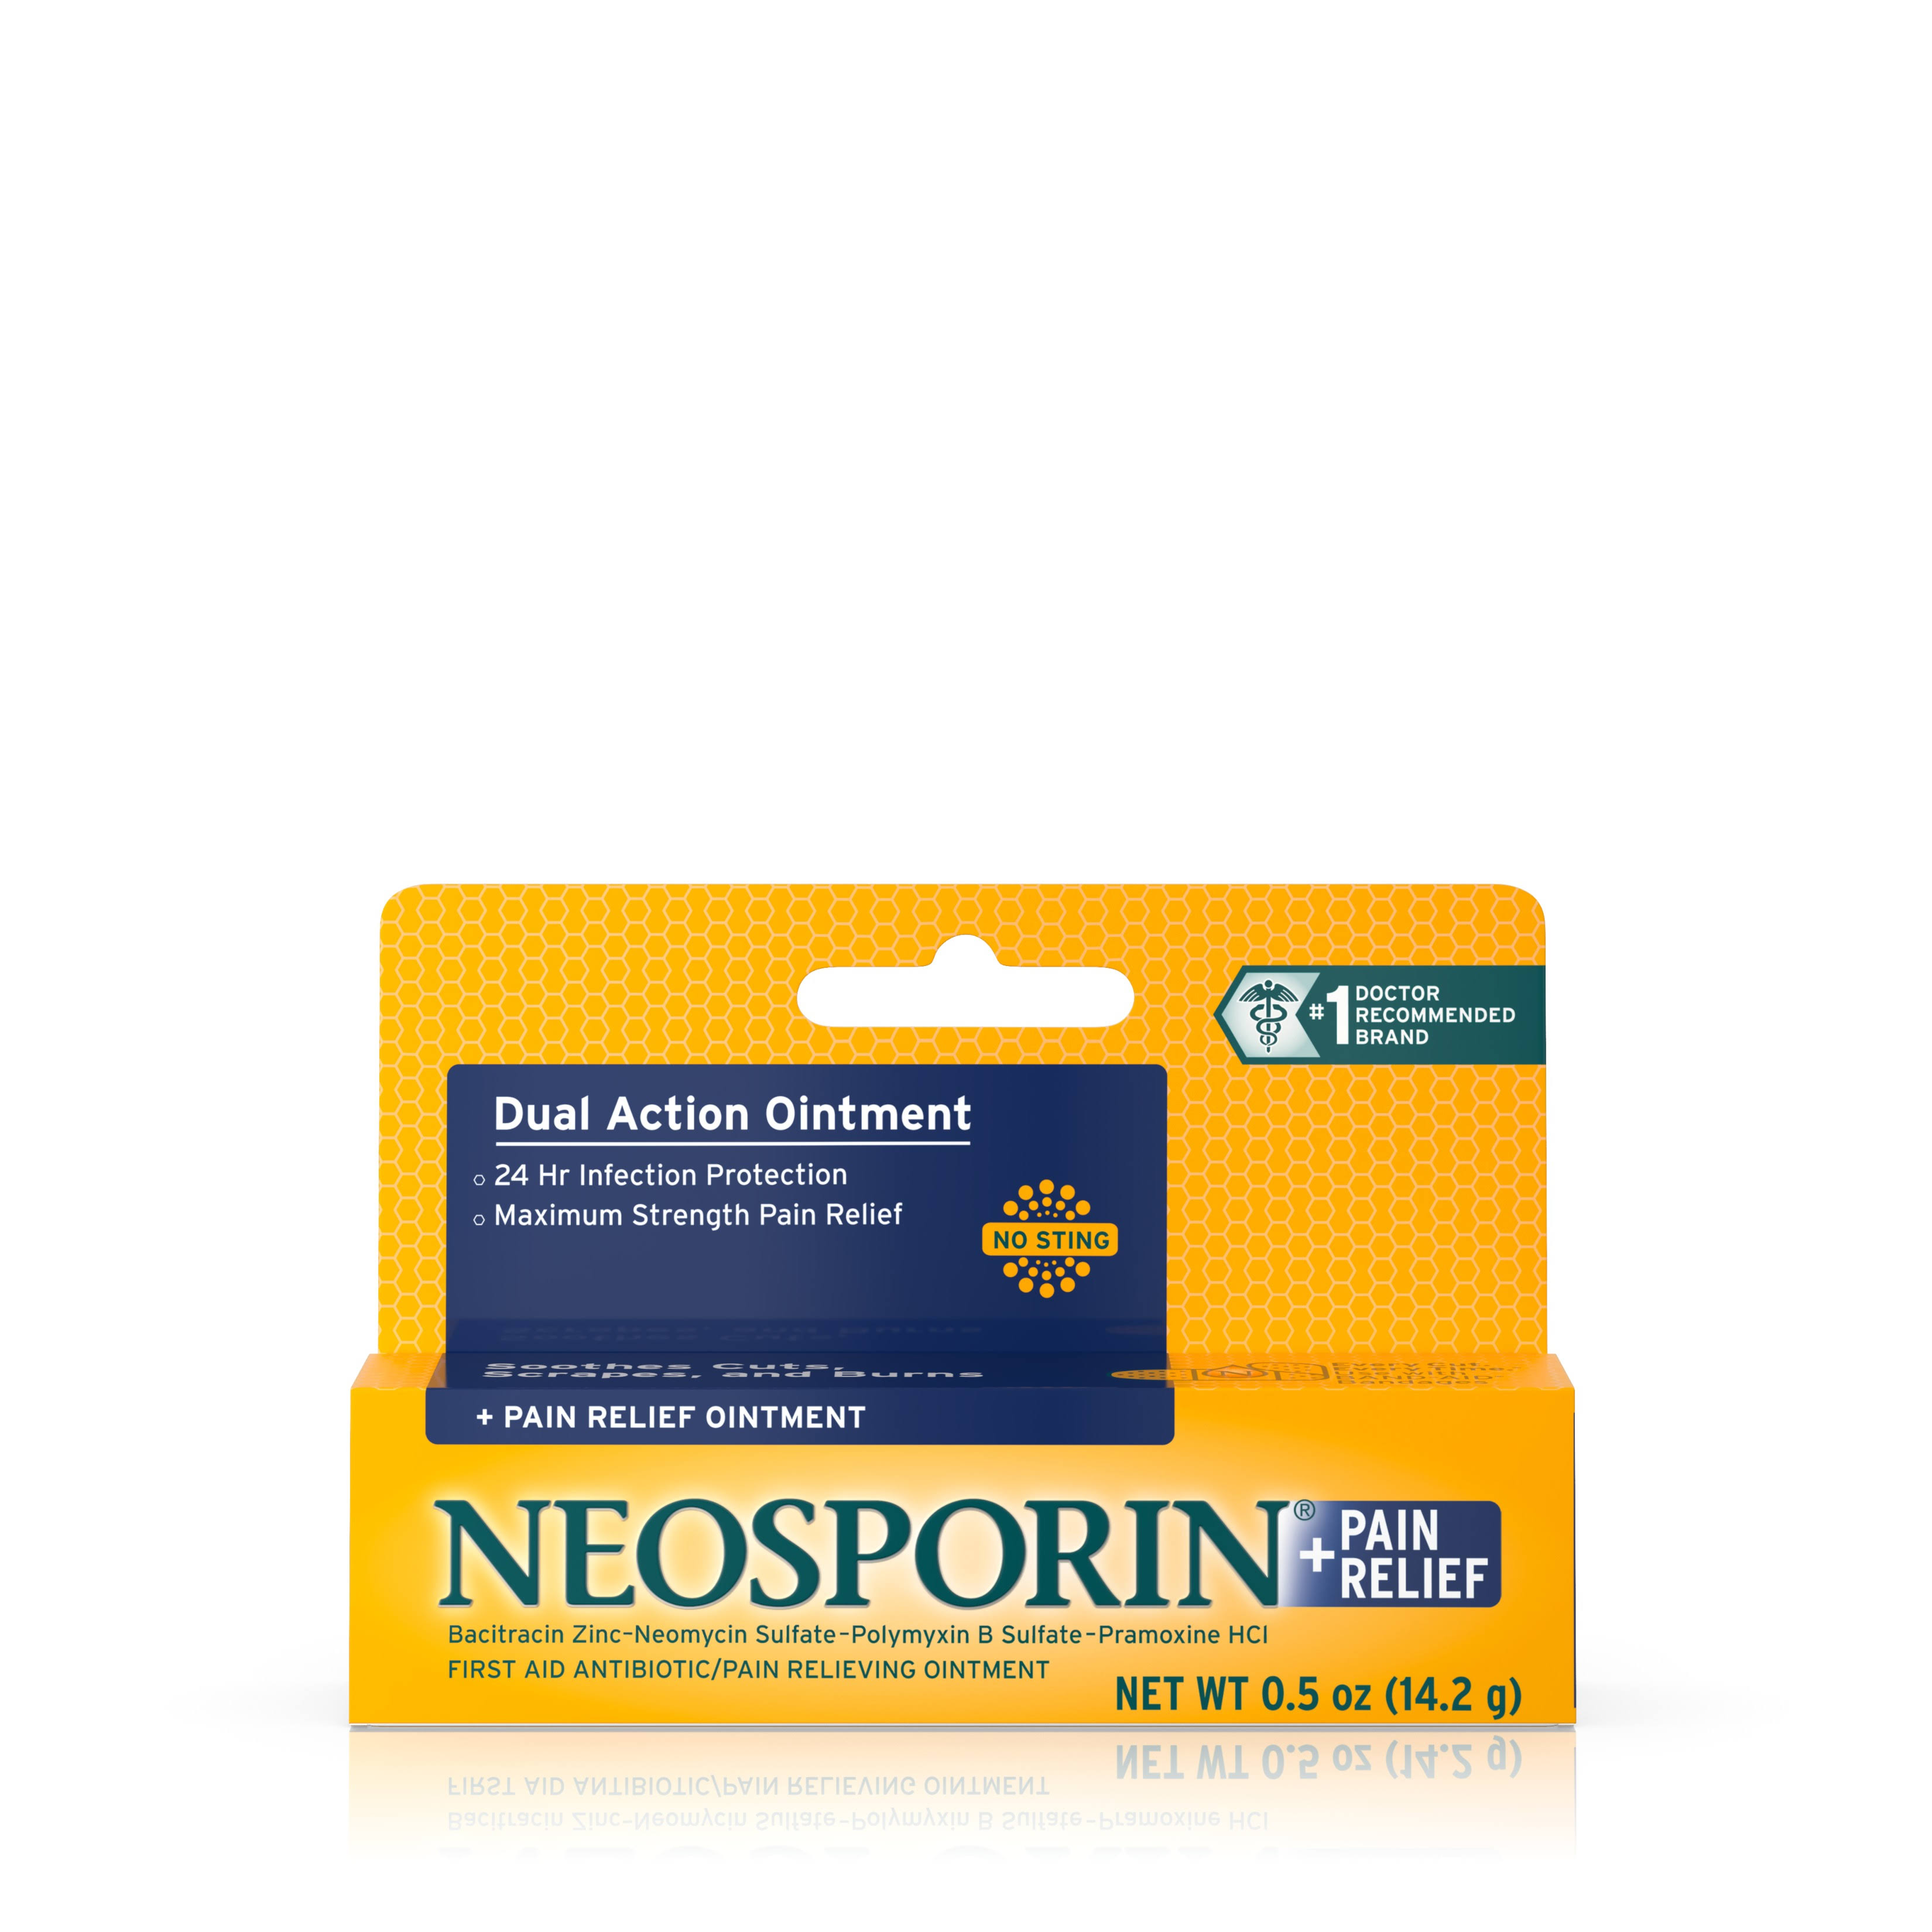 Neosporin Pain Relief Ointment - 0.5oz